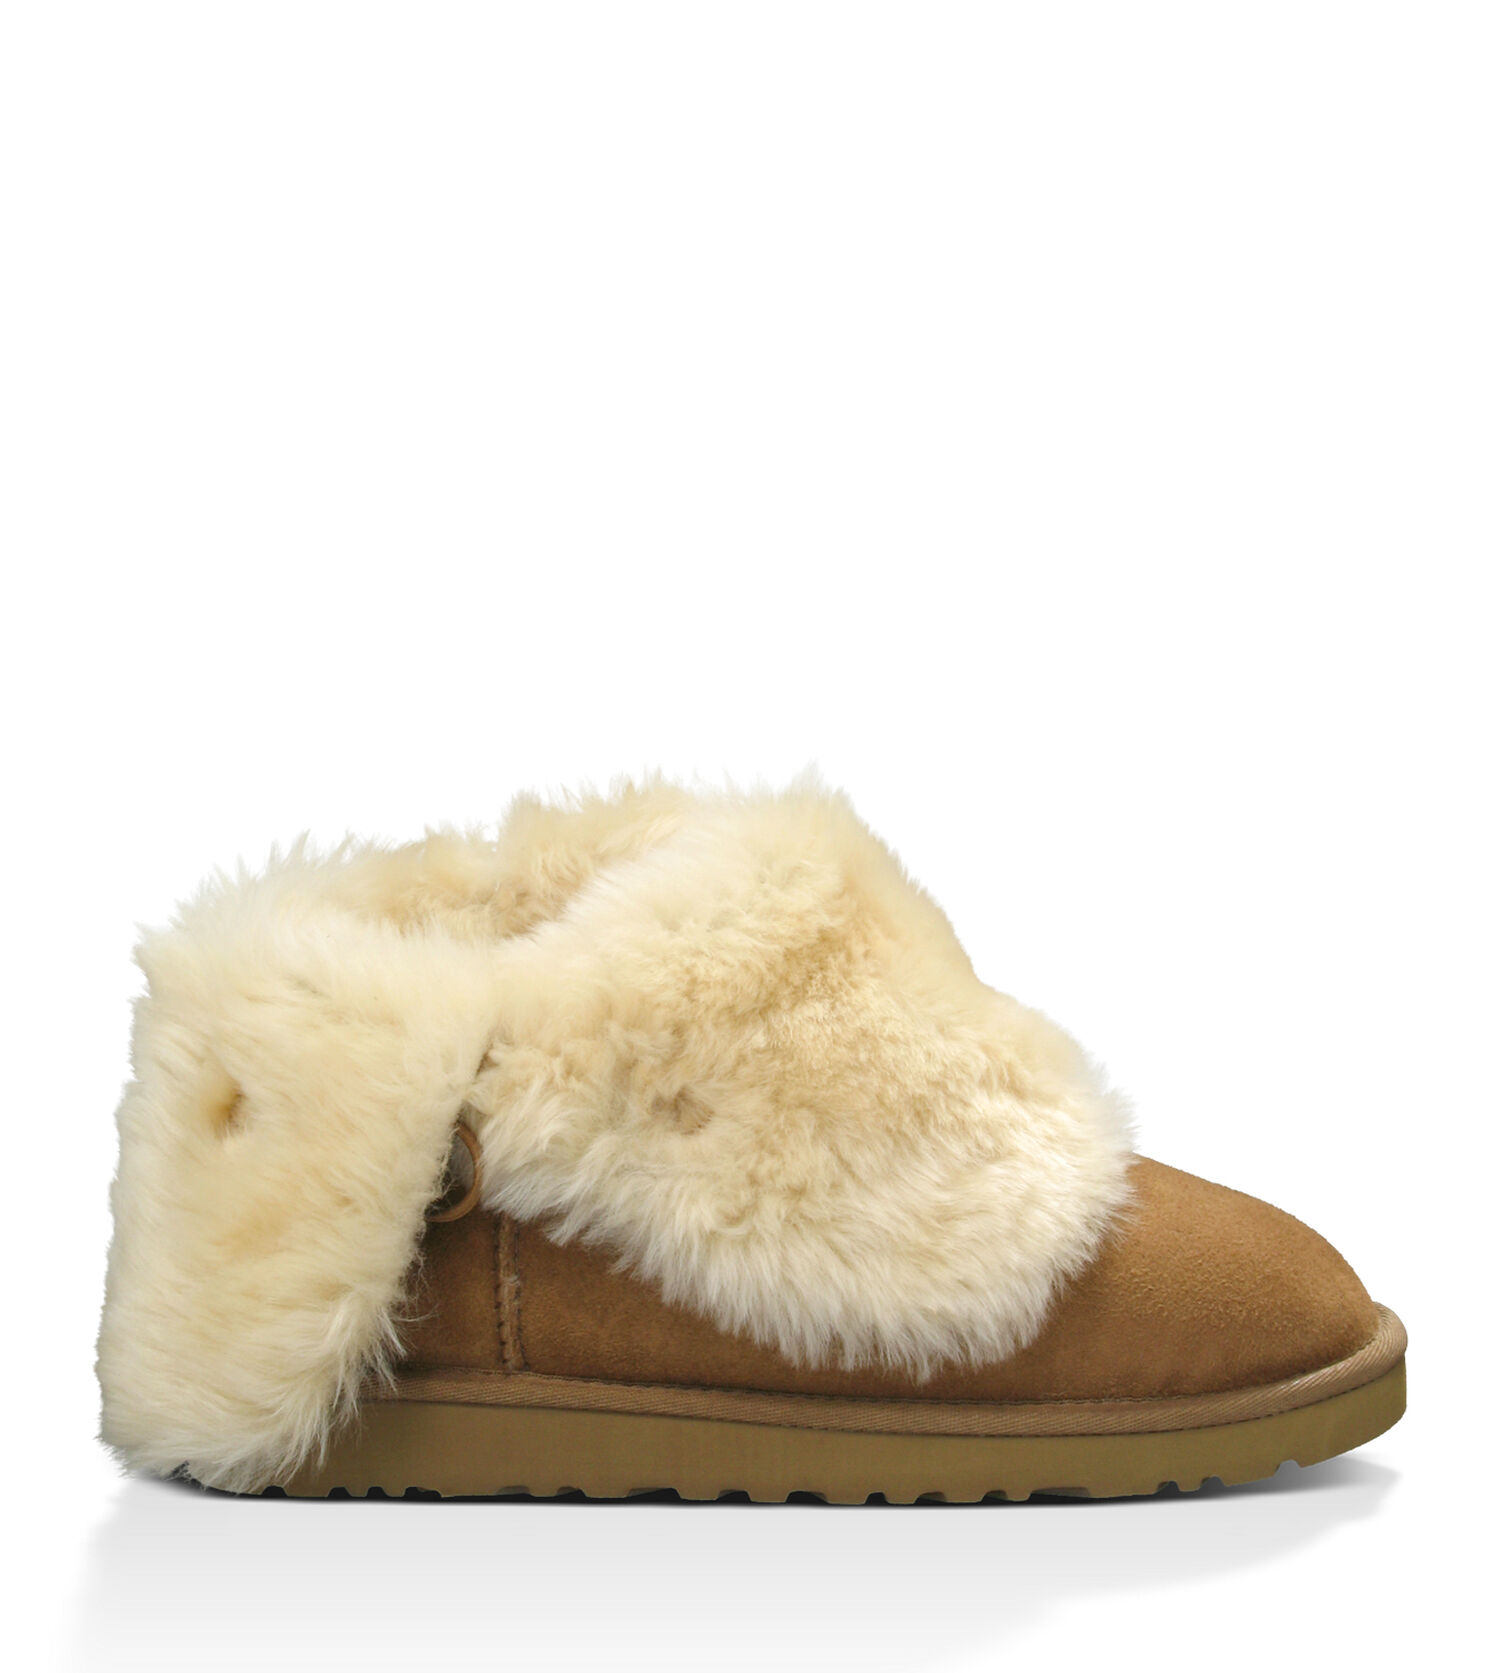 Womens bailey button boot ugg official zoom bailey button image 8 of 8 nvjuhfo Images